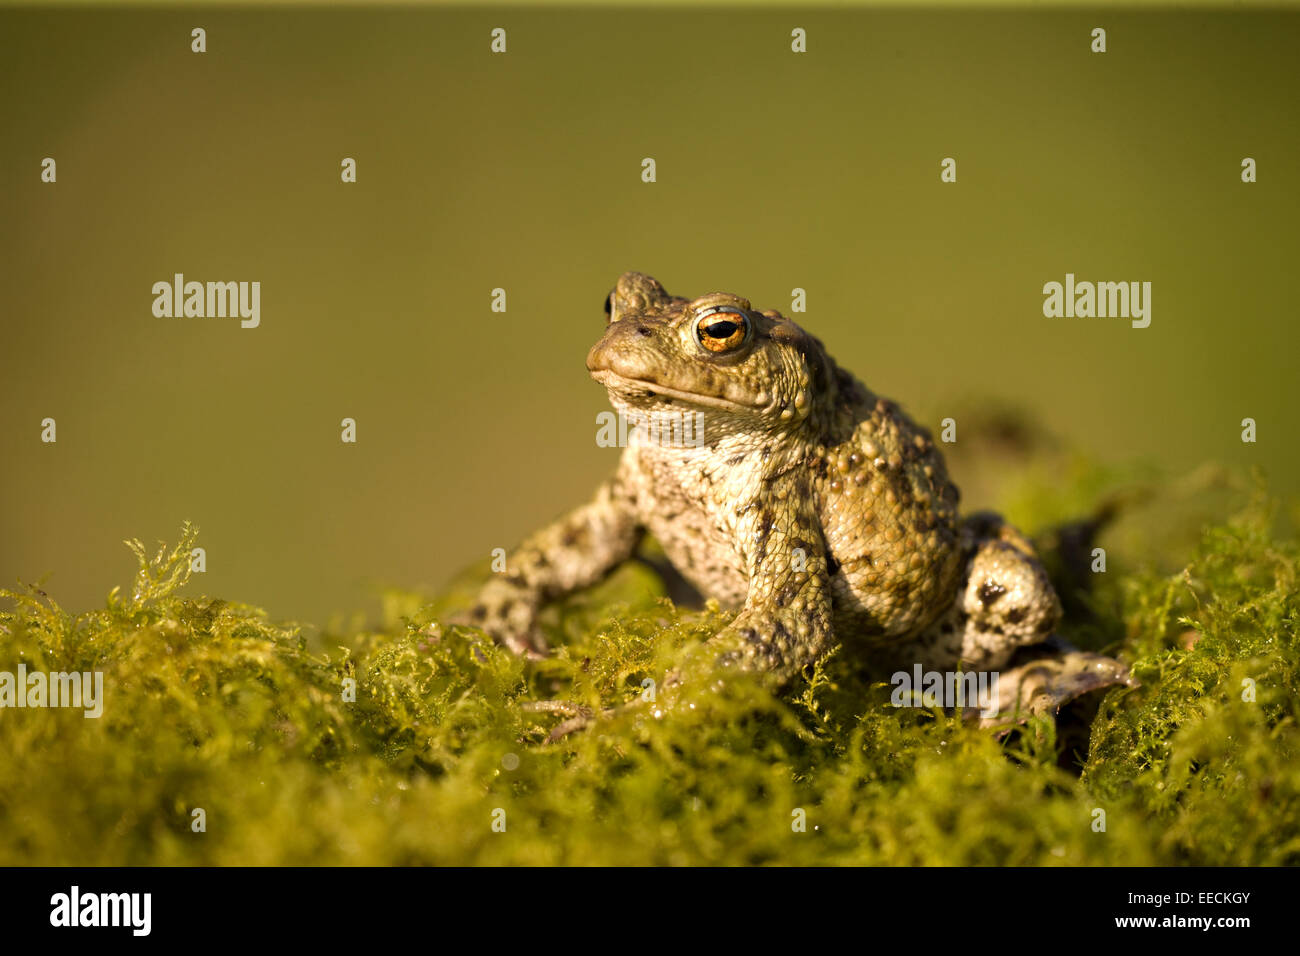 Common Toad sunning it self - Stock Image